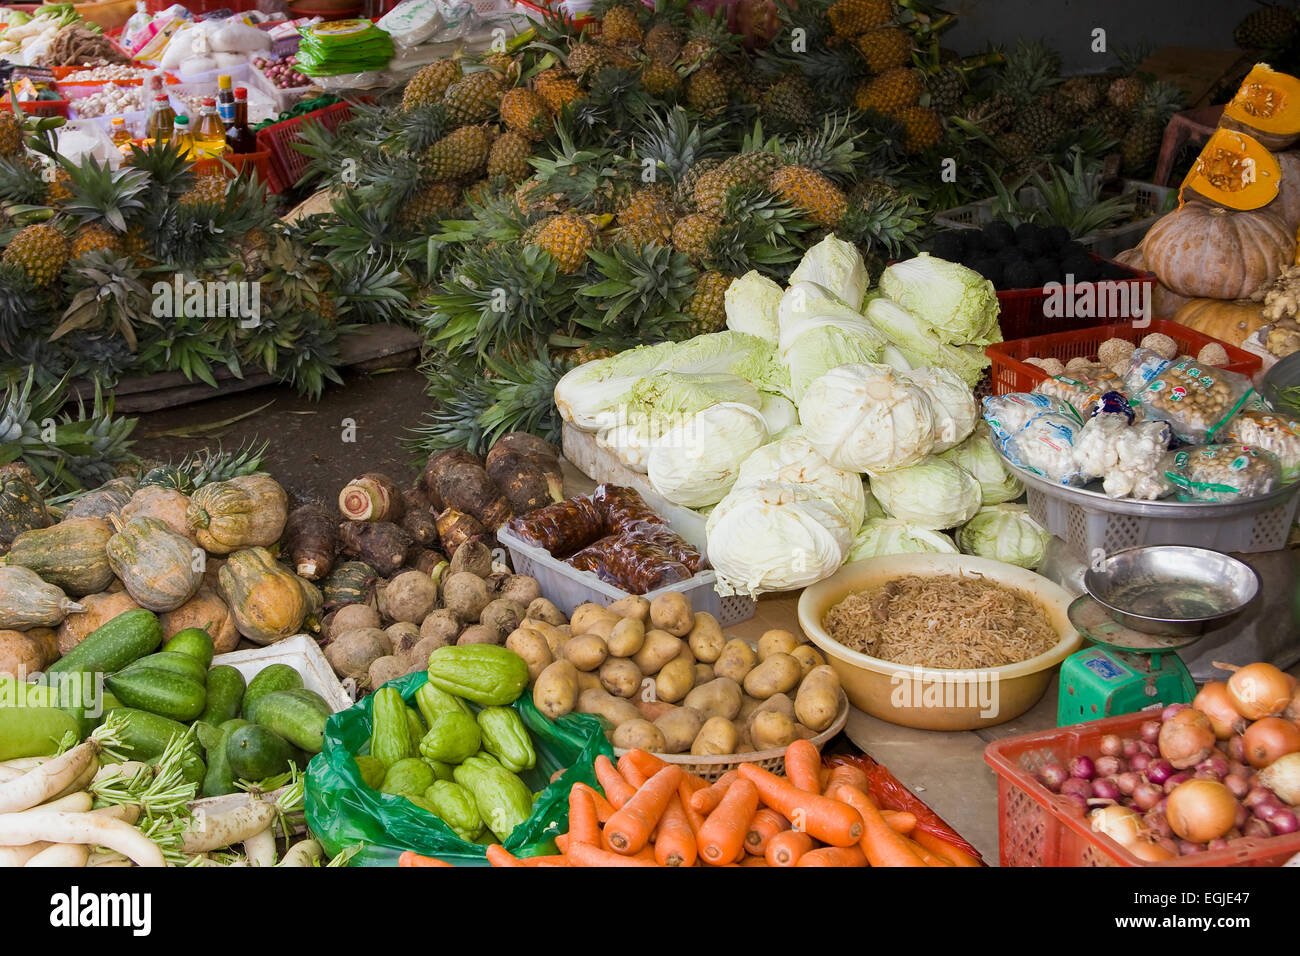 Vegetable stall at the market in Cai Be, Mekong Delta, Vietnam, Southeast Asia - Stock Image